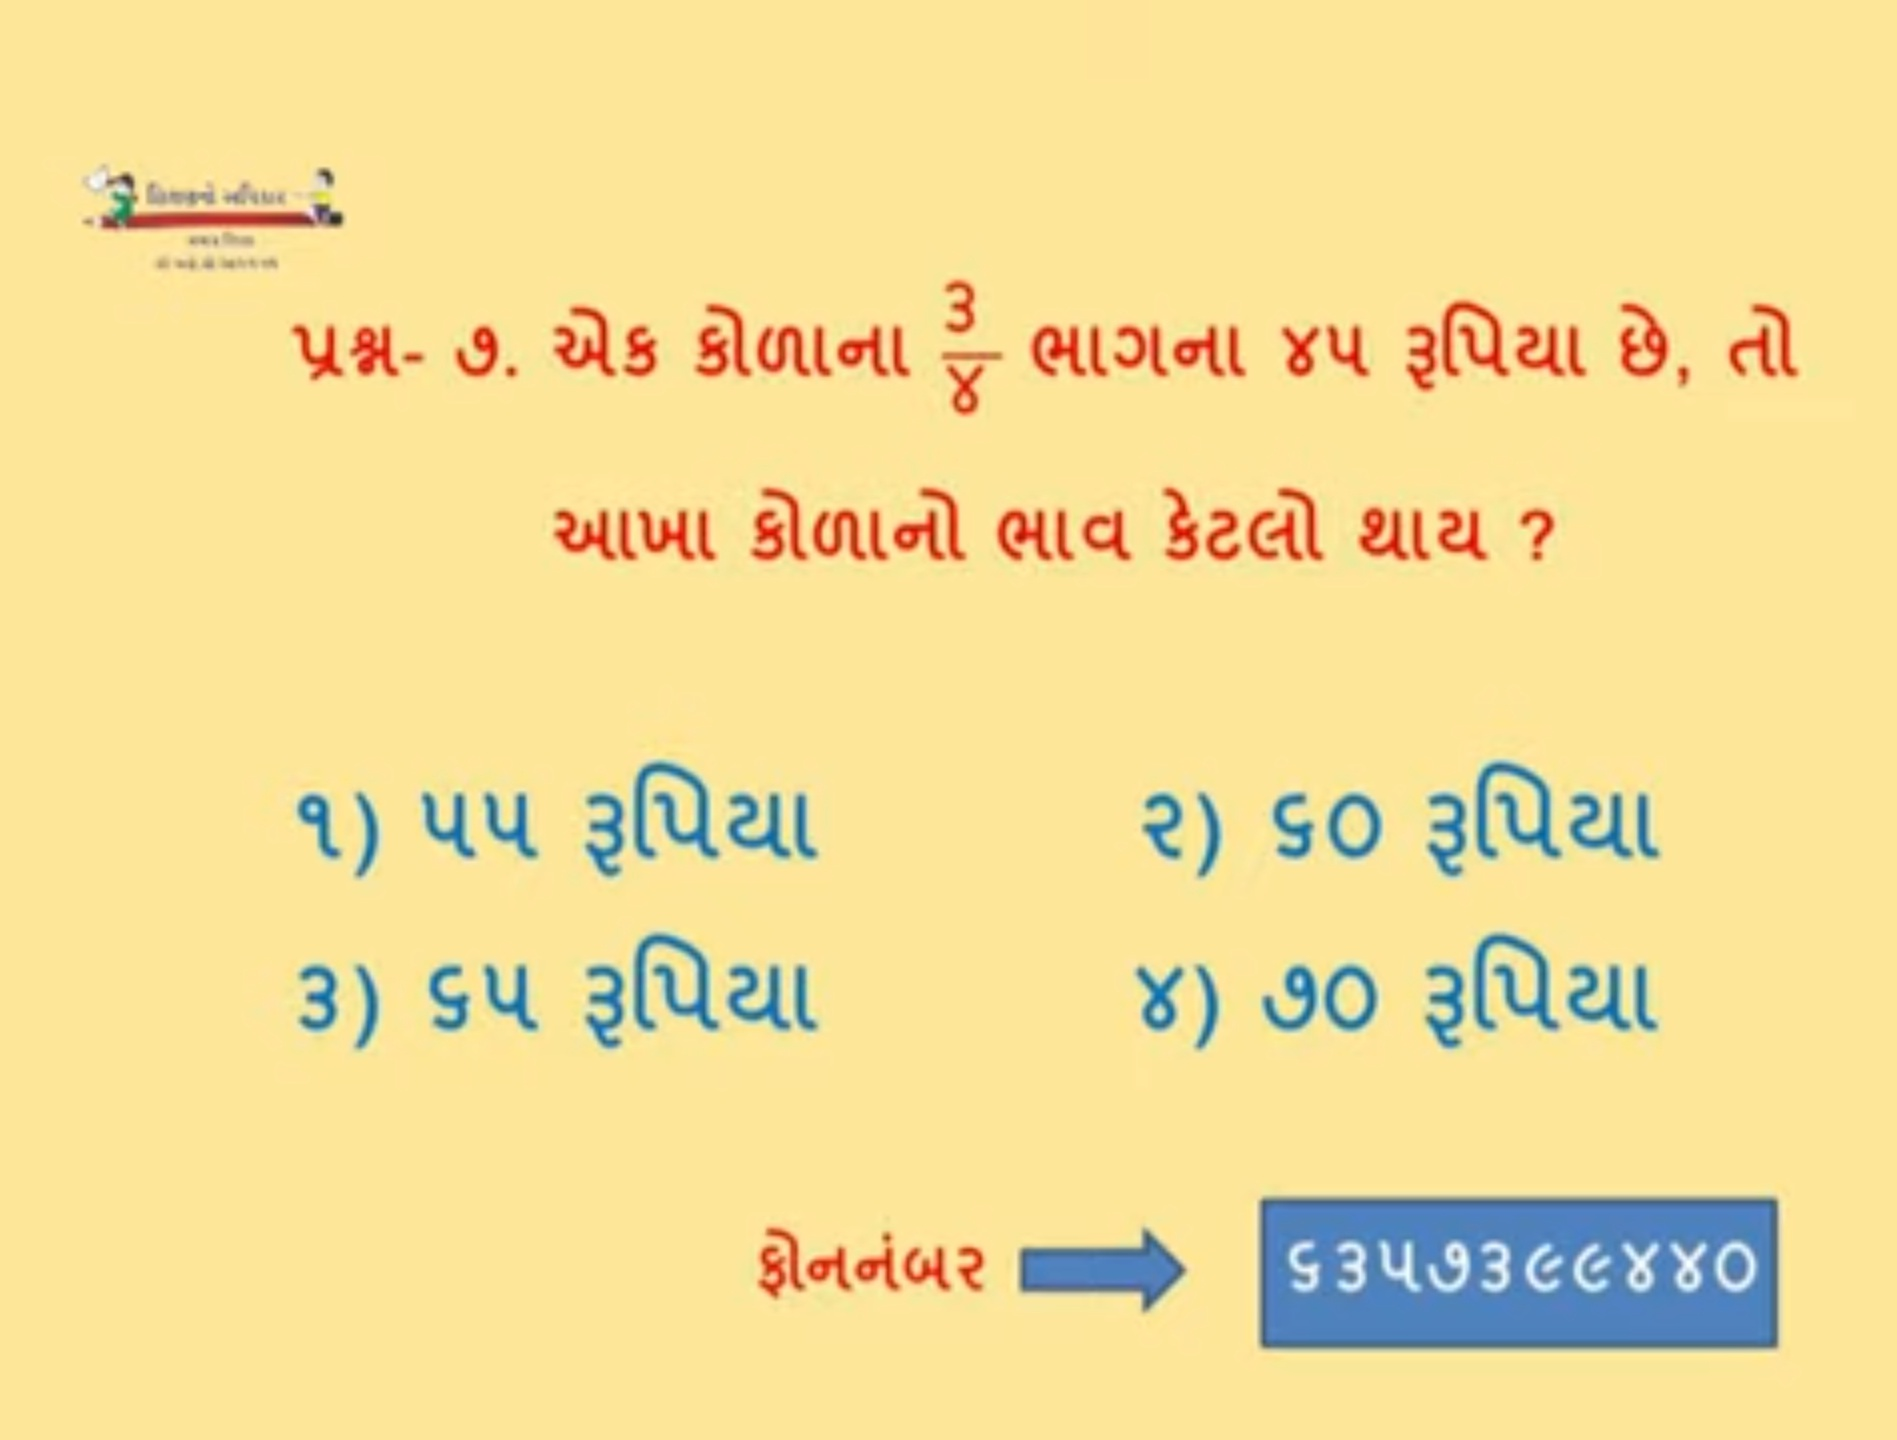 STD-3-4-5-DATE-18-12-2020-HOME-LEARNING-QUESTIONS-AND-ANSWERS.